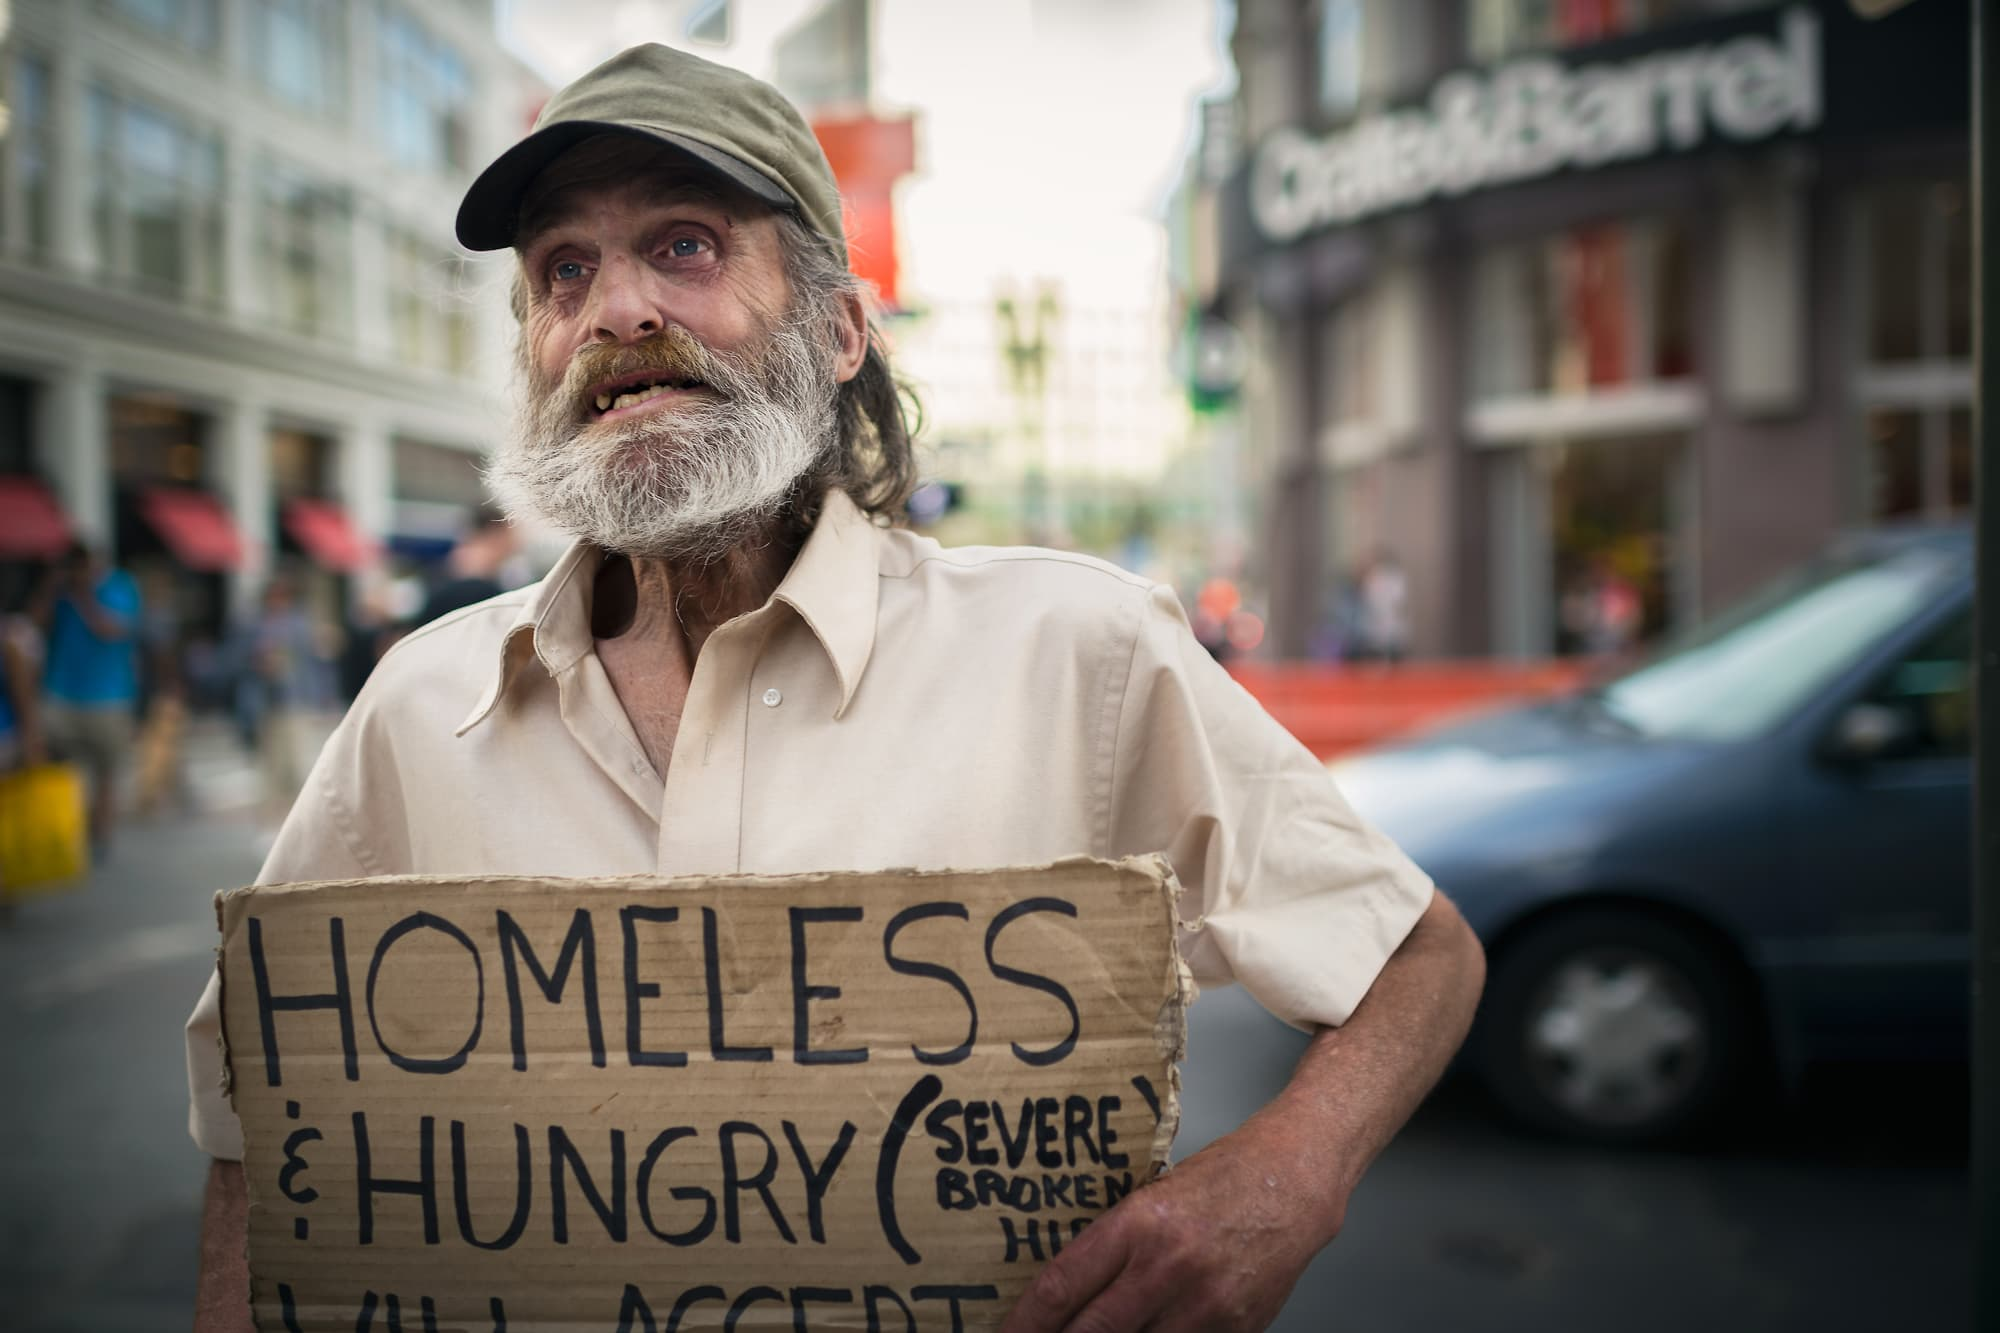 describe homeless person looks like